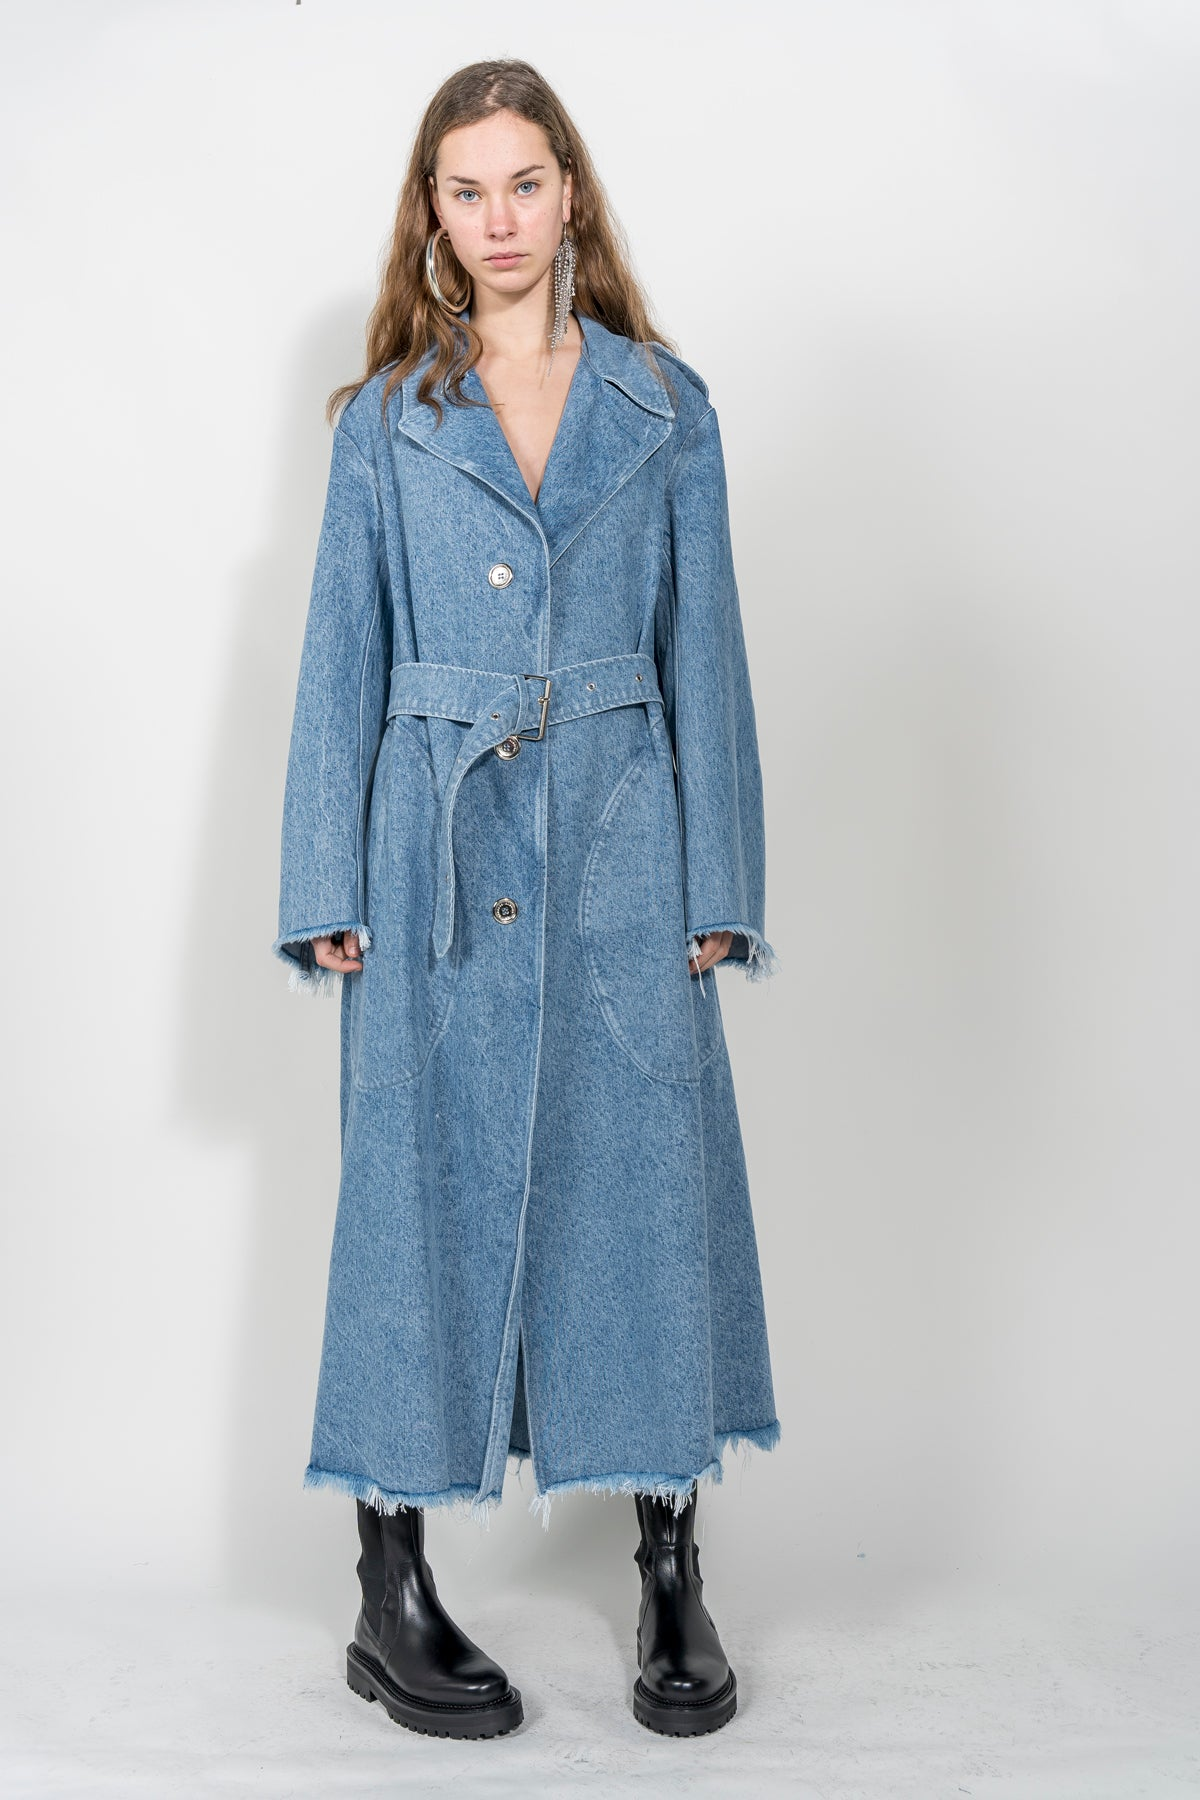 NAVY LONG TRENCH COAT marques almeida